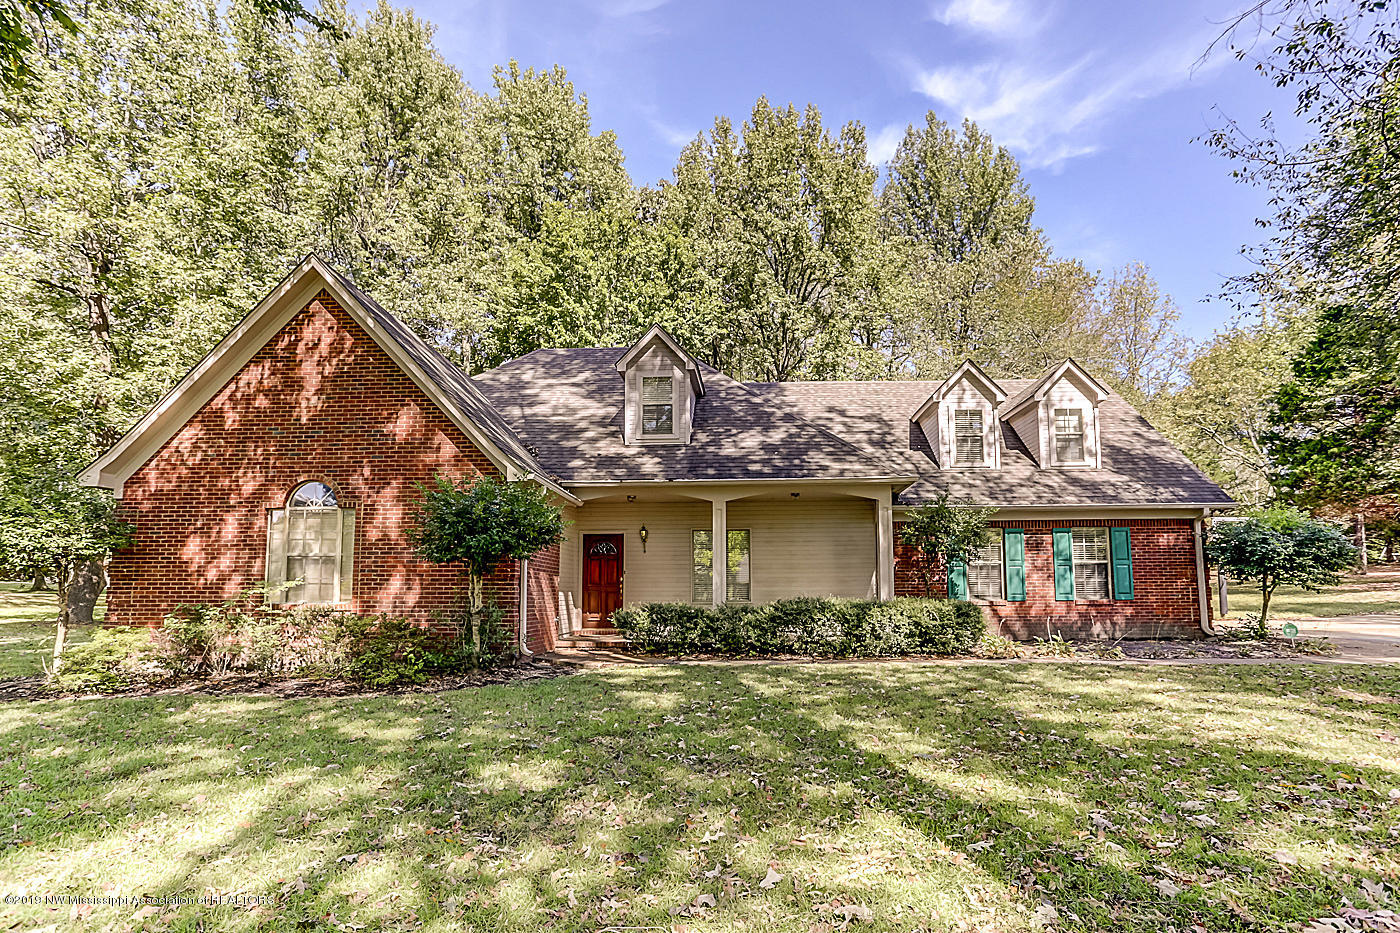 3330 Bonner Dr, Olive Branch in DeSoto County, MS 38654 Home for Sale